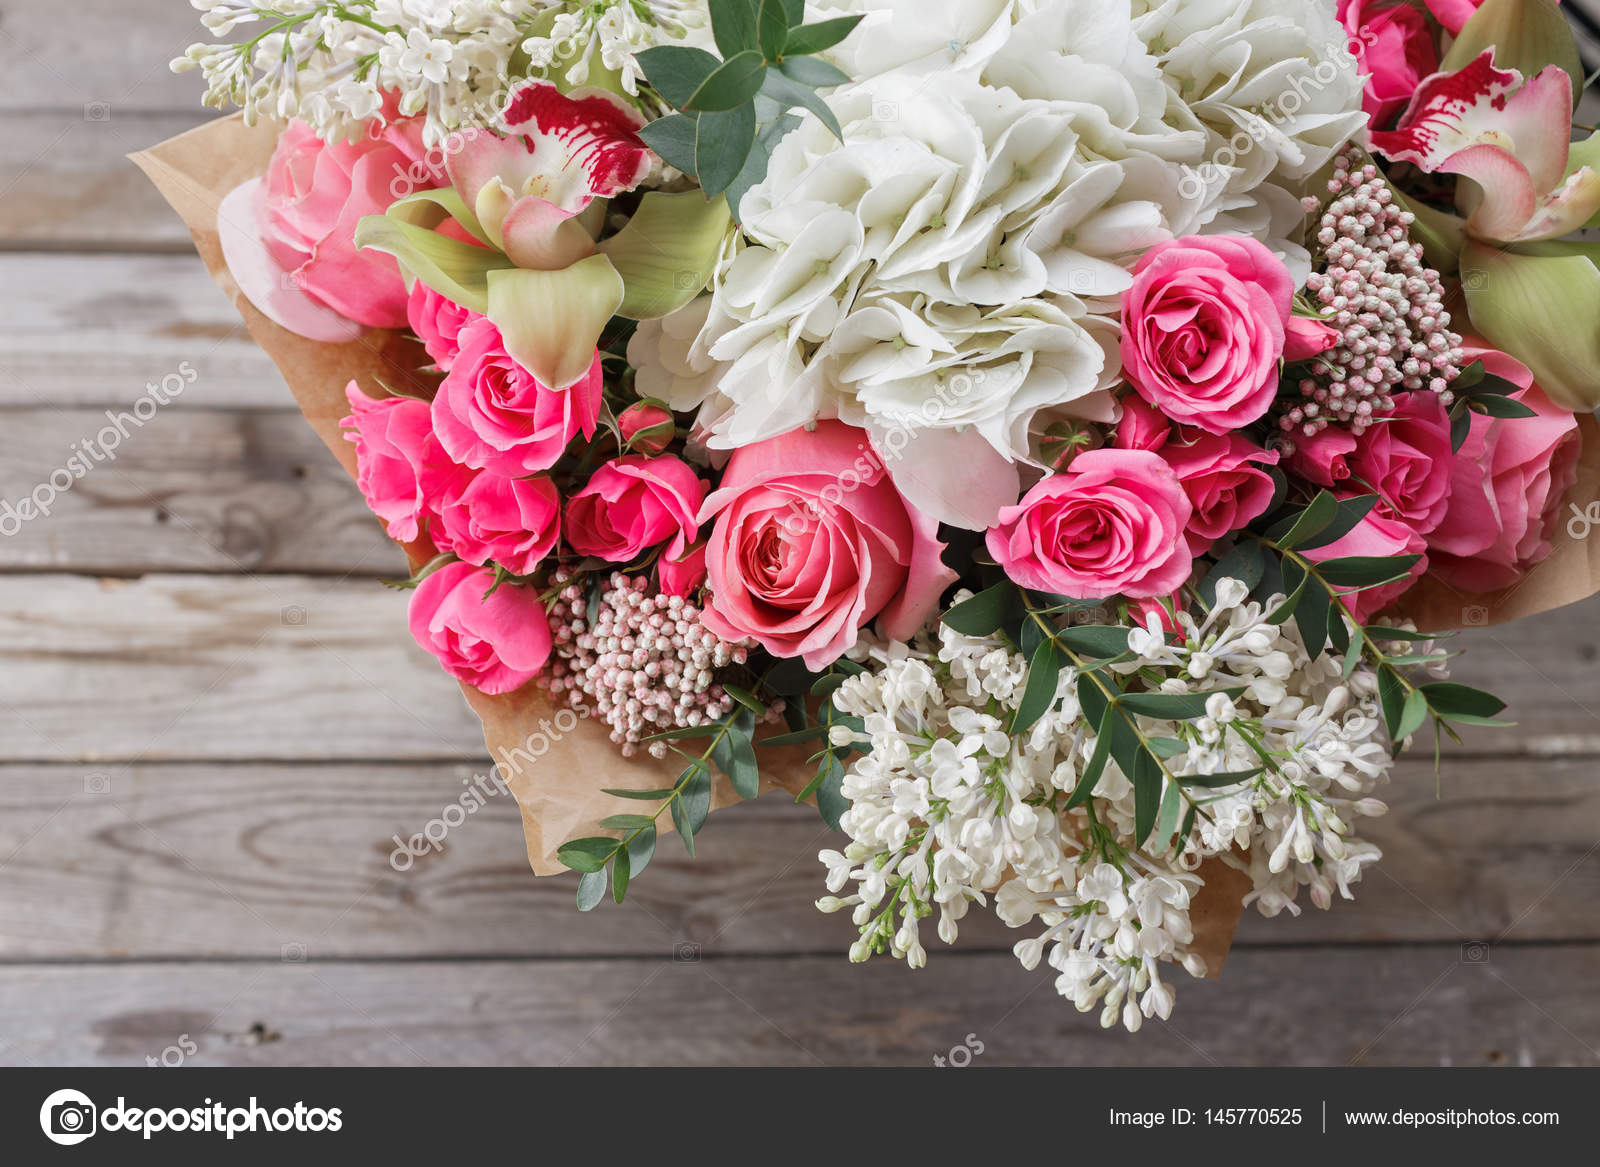 Luxury bouquet of different flowers in glass vase on wooden wall luxury bouquet of different flowers in glass vase on wooden wall copy space stock izmirmasajfo